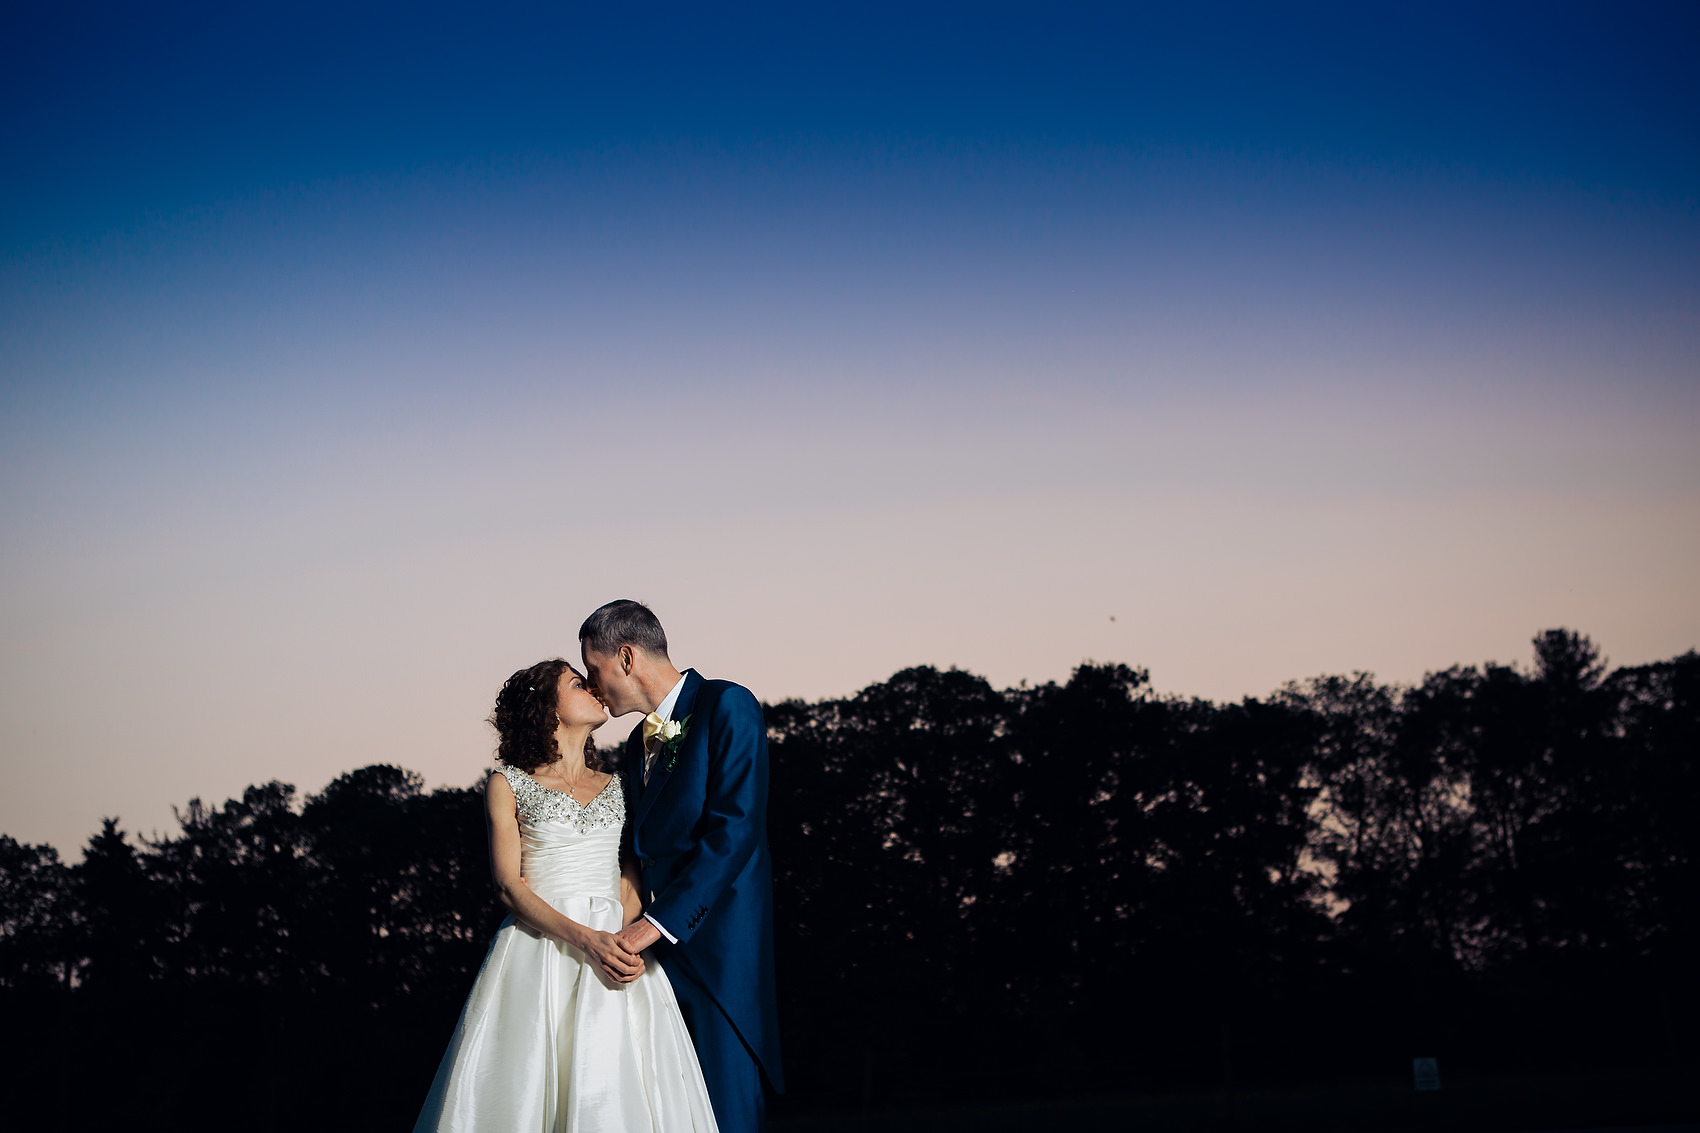 Sunset Photo Bride and Groom Kenilworth Warwickshire